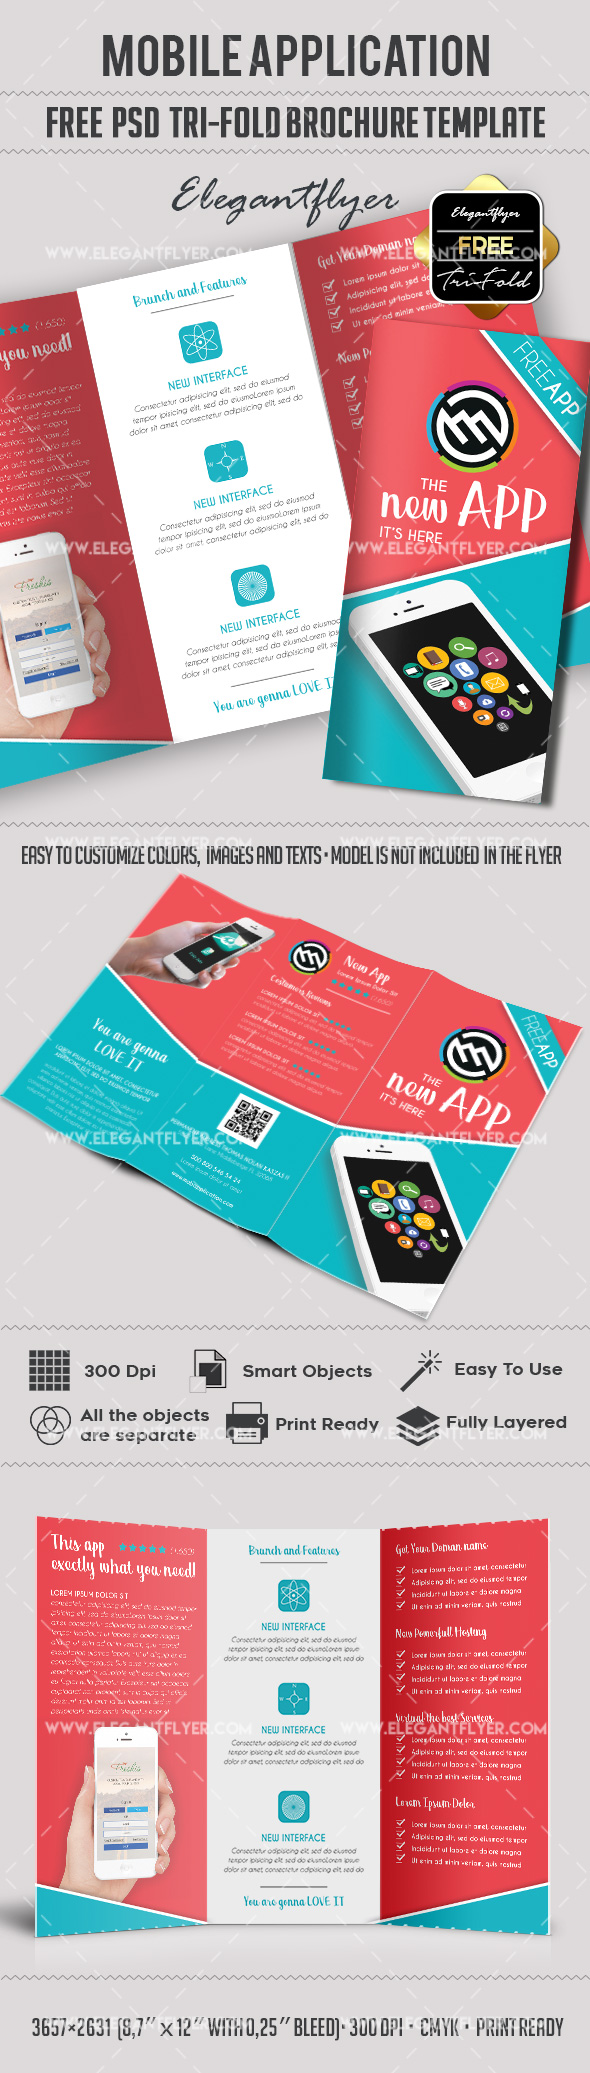 Free mobile application tri fold psd brochure by for Free flyer brochure templates